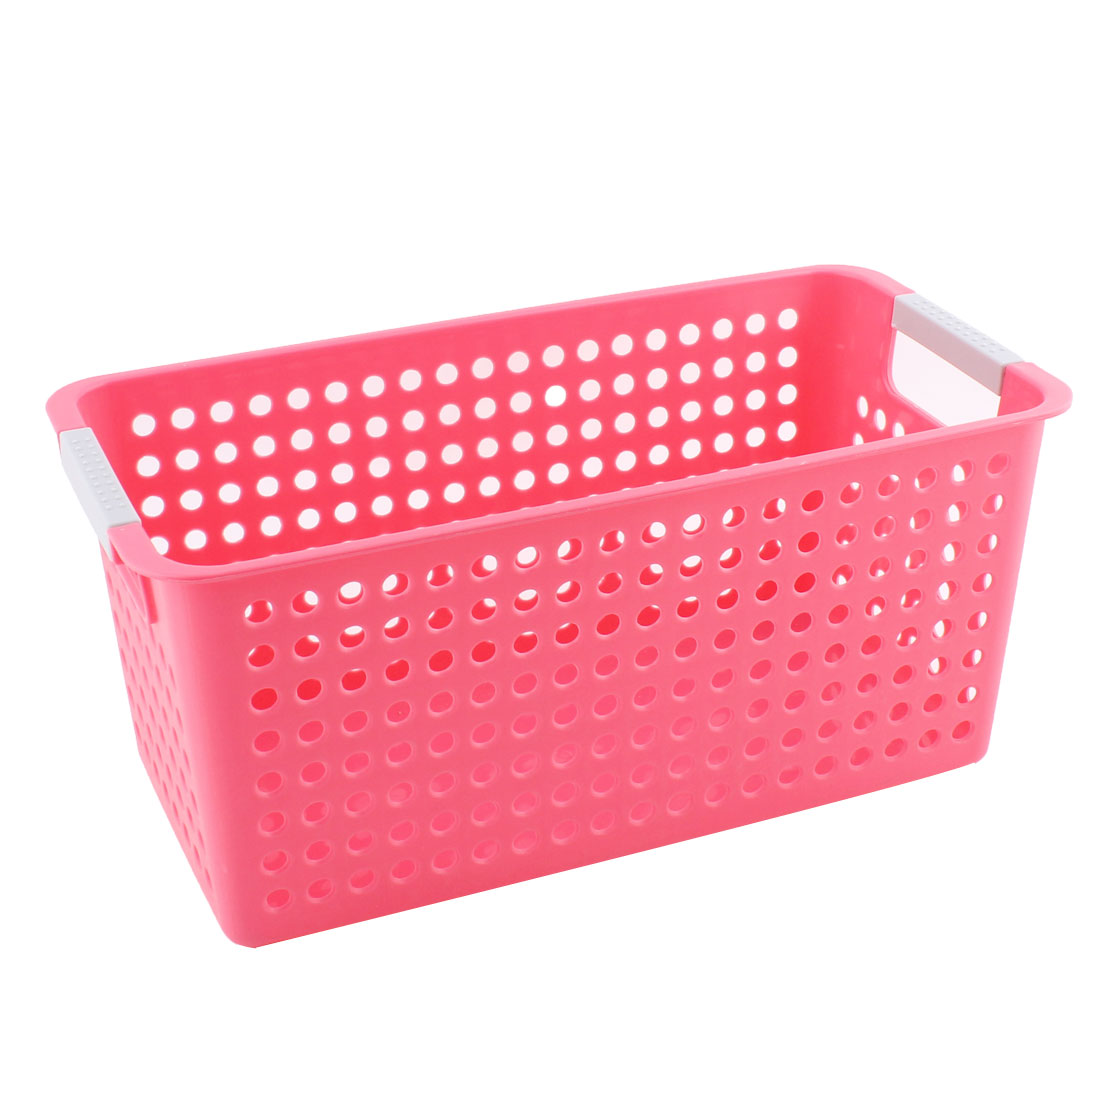 Office School Family Plastic Hollow Out Design Storage Basket Container Pink